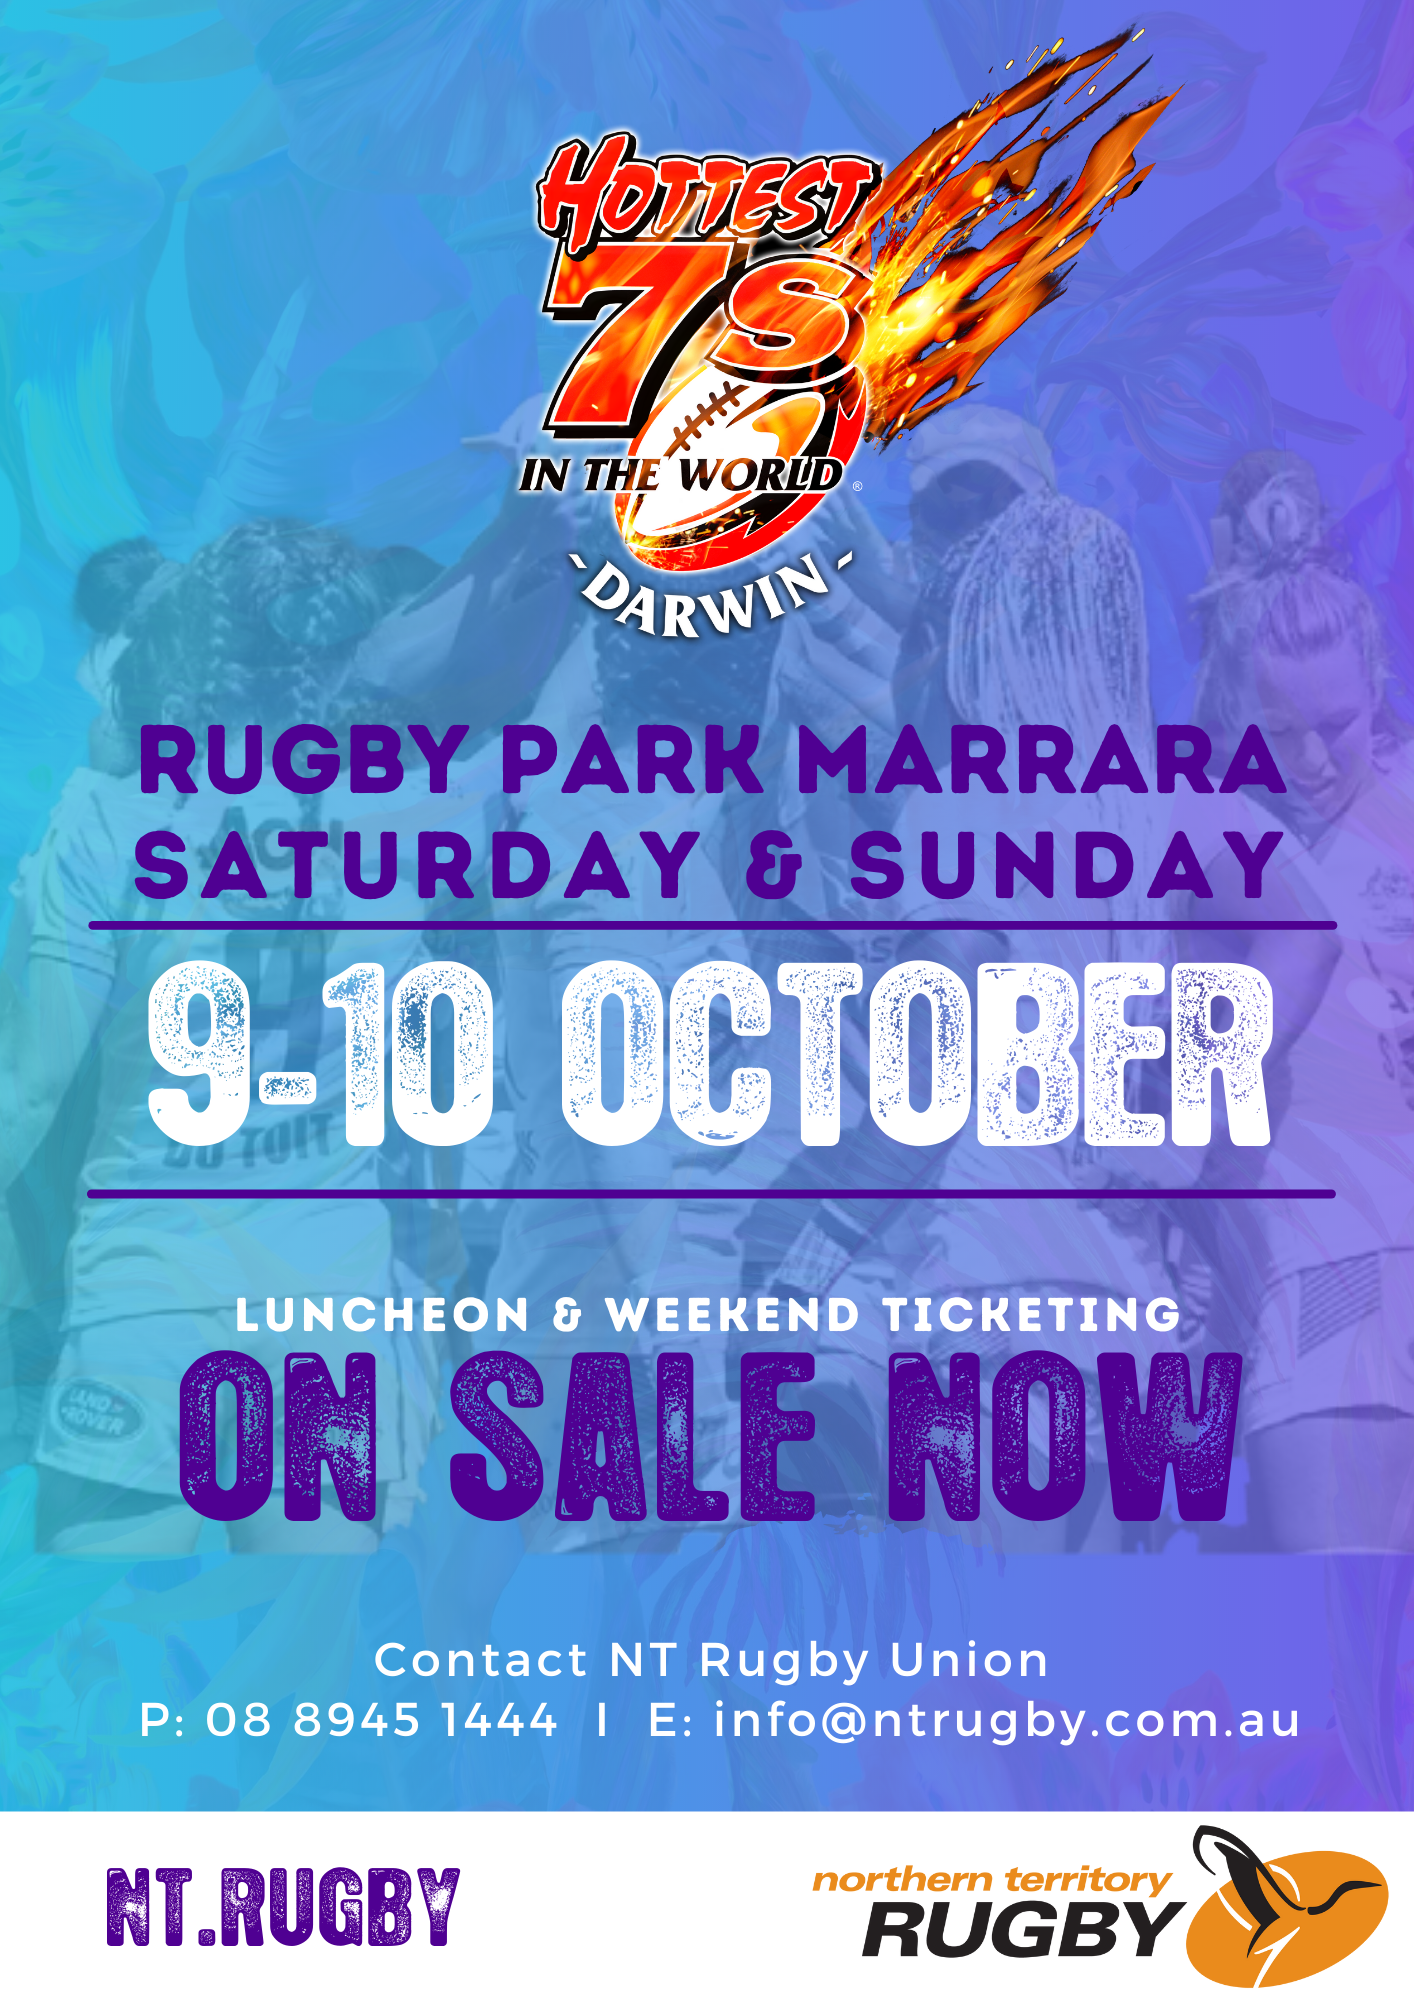 2021 H7s tickets on sale now